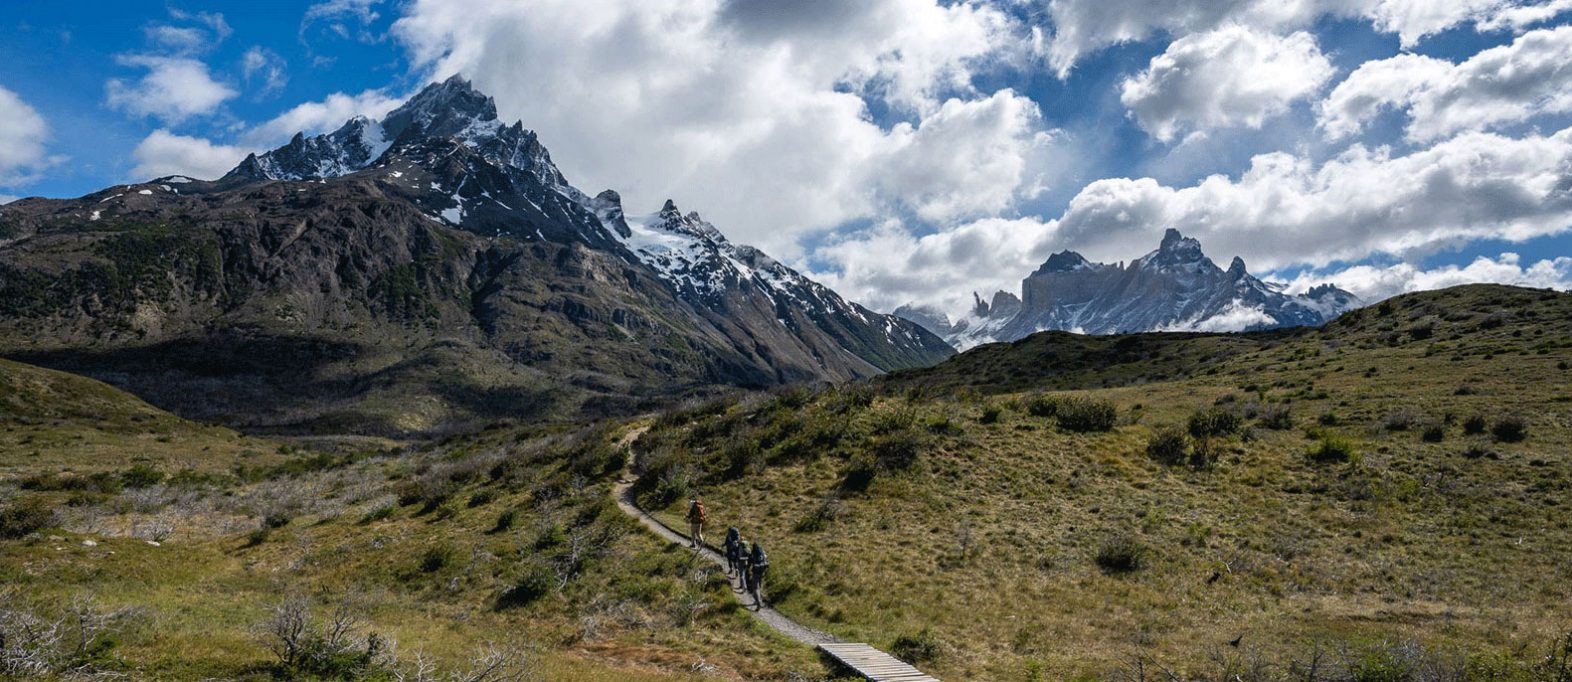 Torres del Paine Wandern | Chile Tipps